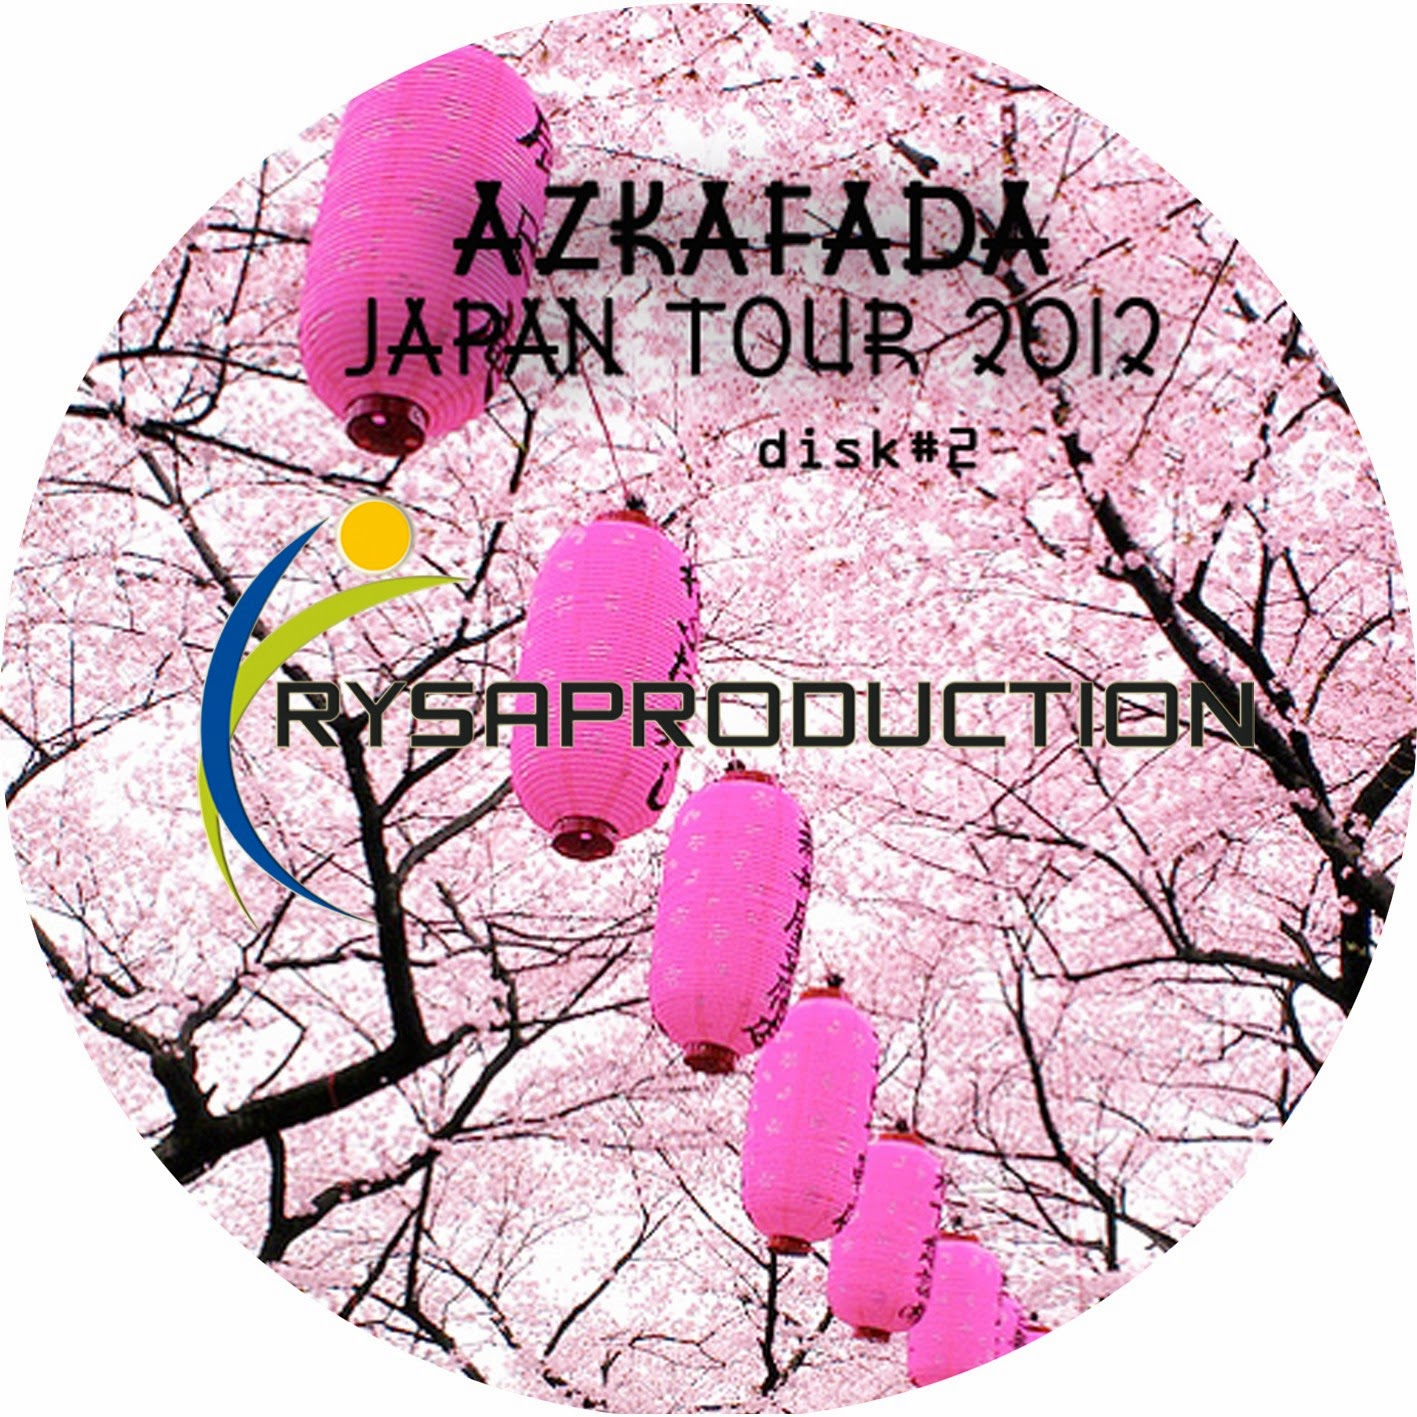 Japan Tour Azkafada